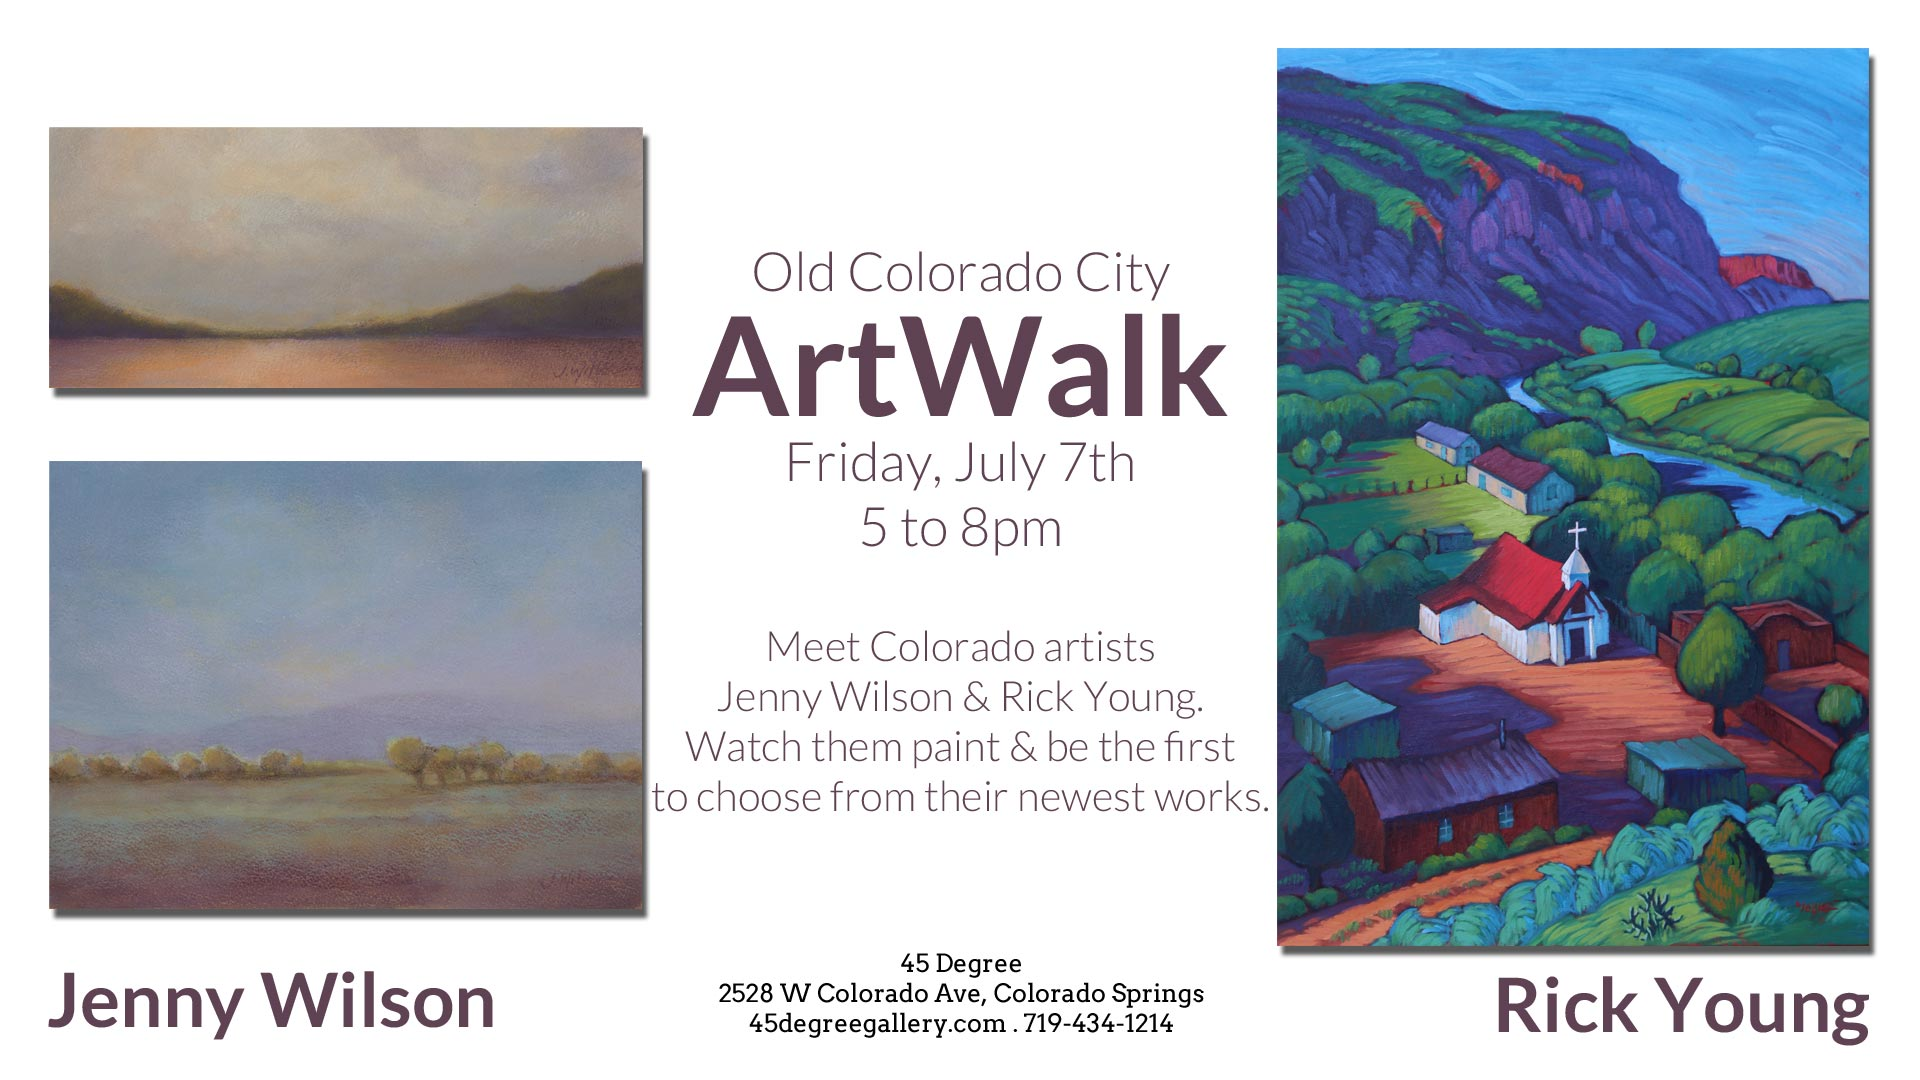 Art colorado springs - Meet Colorado